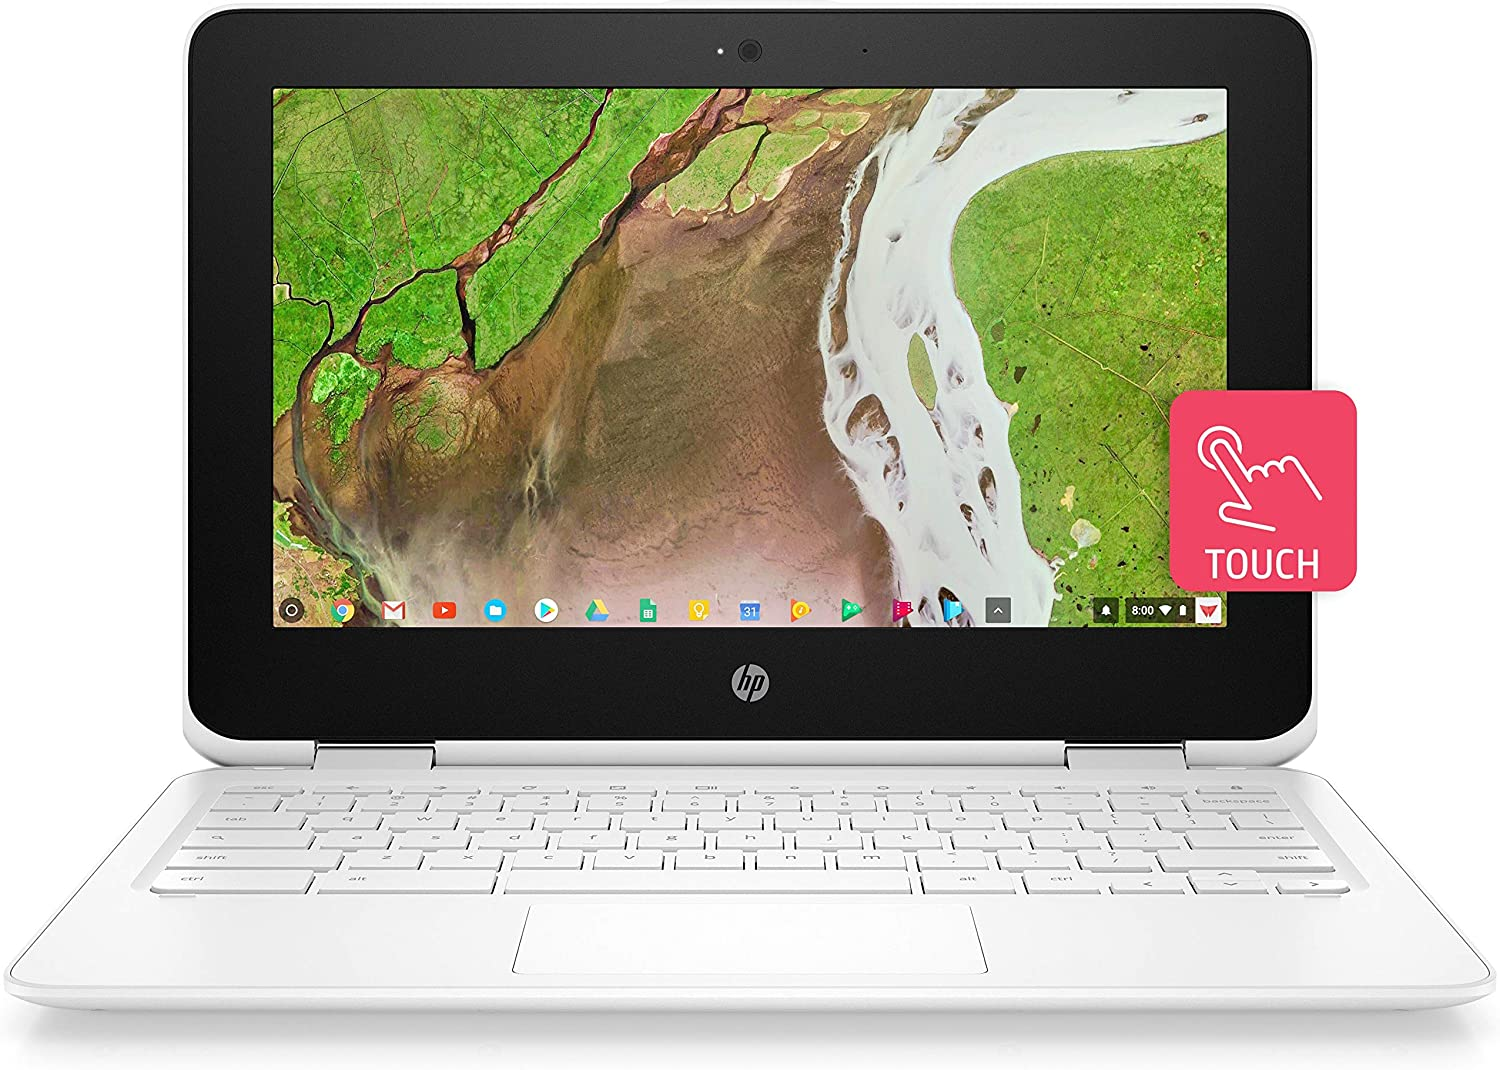 HP 2-in-1 Convertible Chromebook 11.6 HD IPS Touchscreen, Intel Celeron N3350 Processor, 4GB Ram 32GB SSD, Intel HD Graphics, Wi